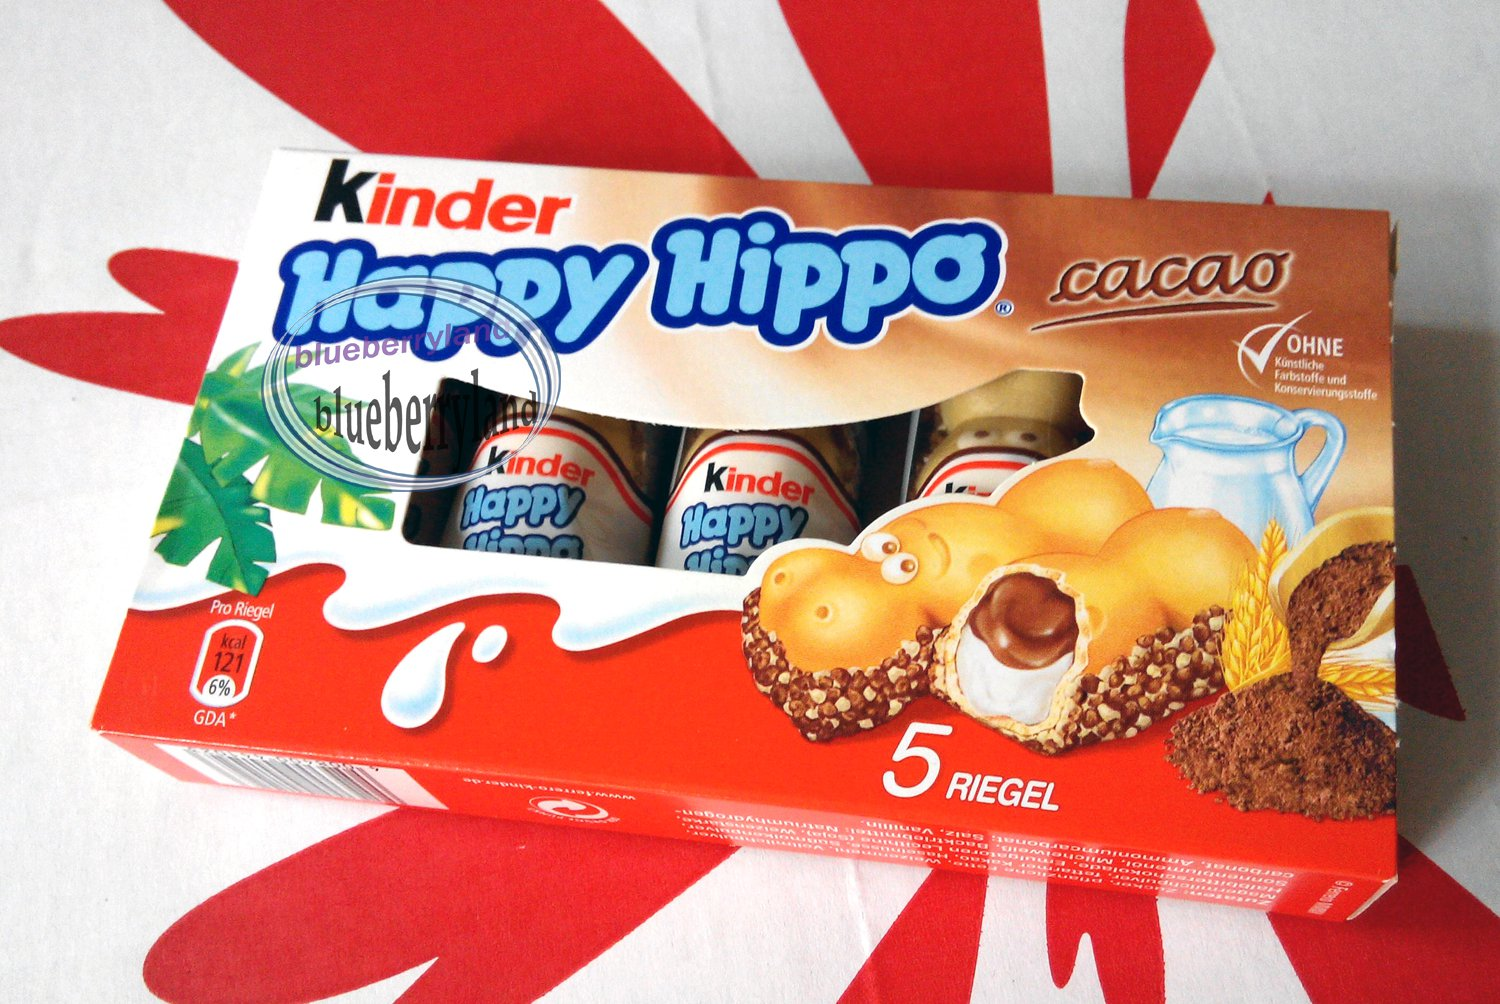 Ferrero Kinder Happy Hippo Cocoa Cream Chocolate Wafer Cookie Biscuit Pack sweet snack